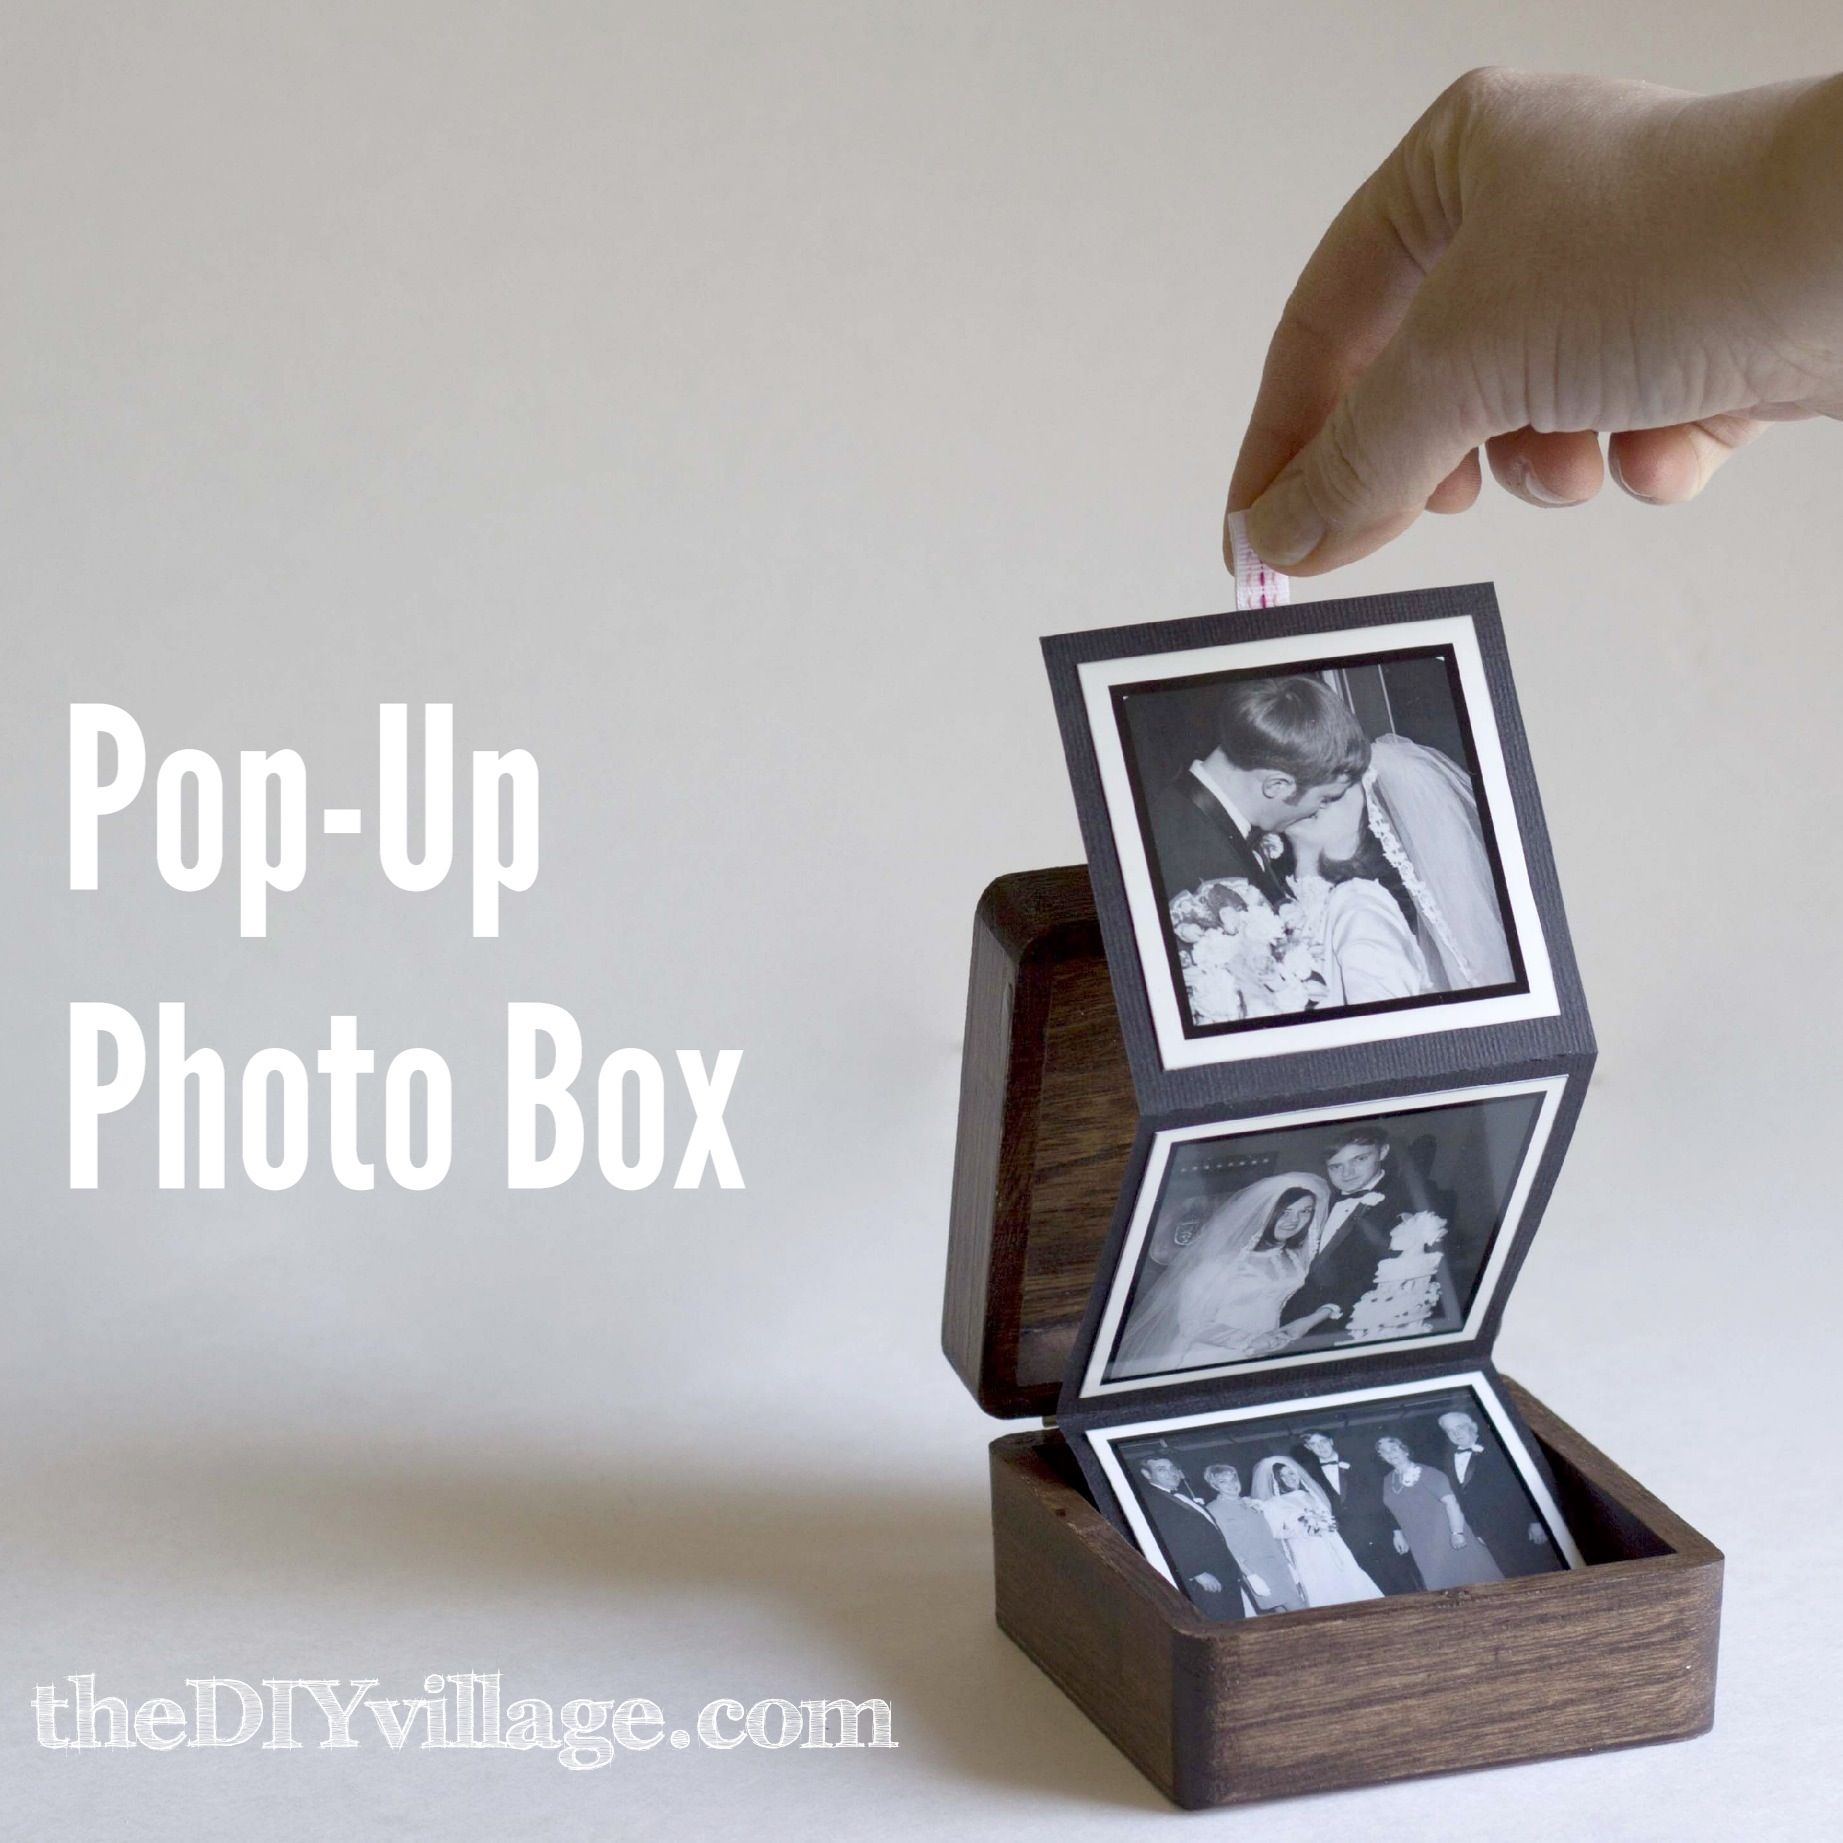 PopUp Photo Box (Gift Idea Diy gifts for him